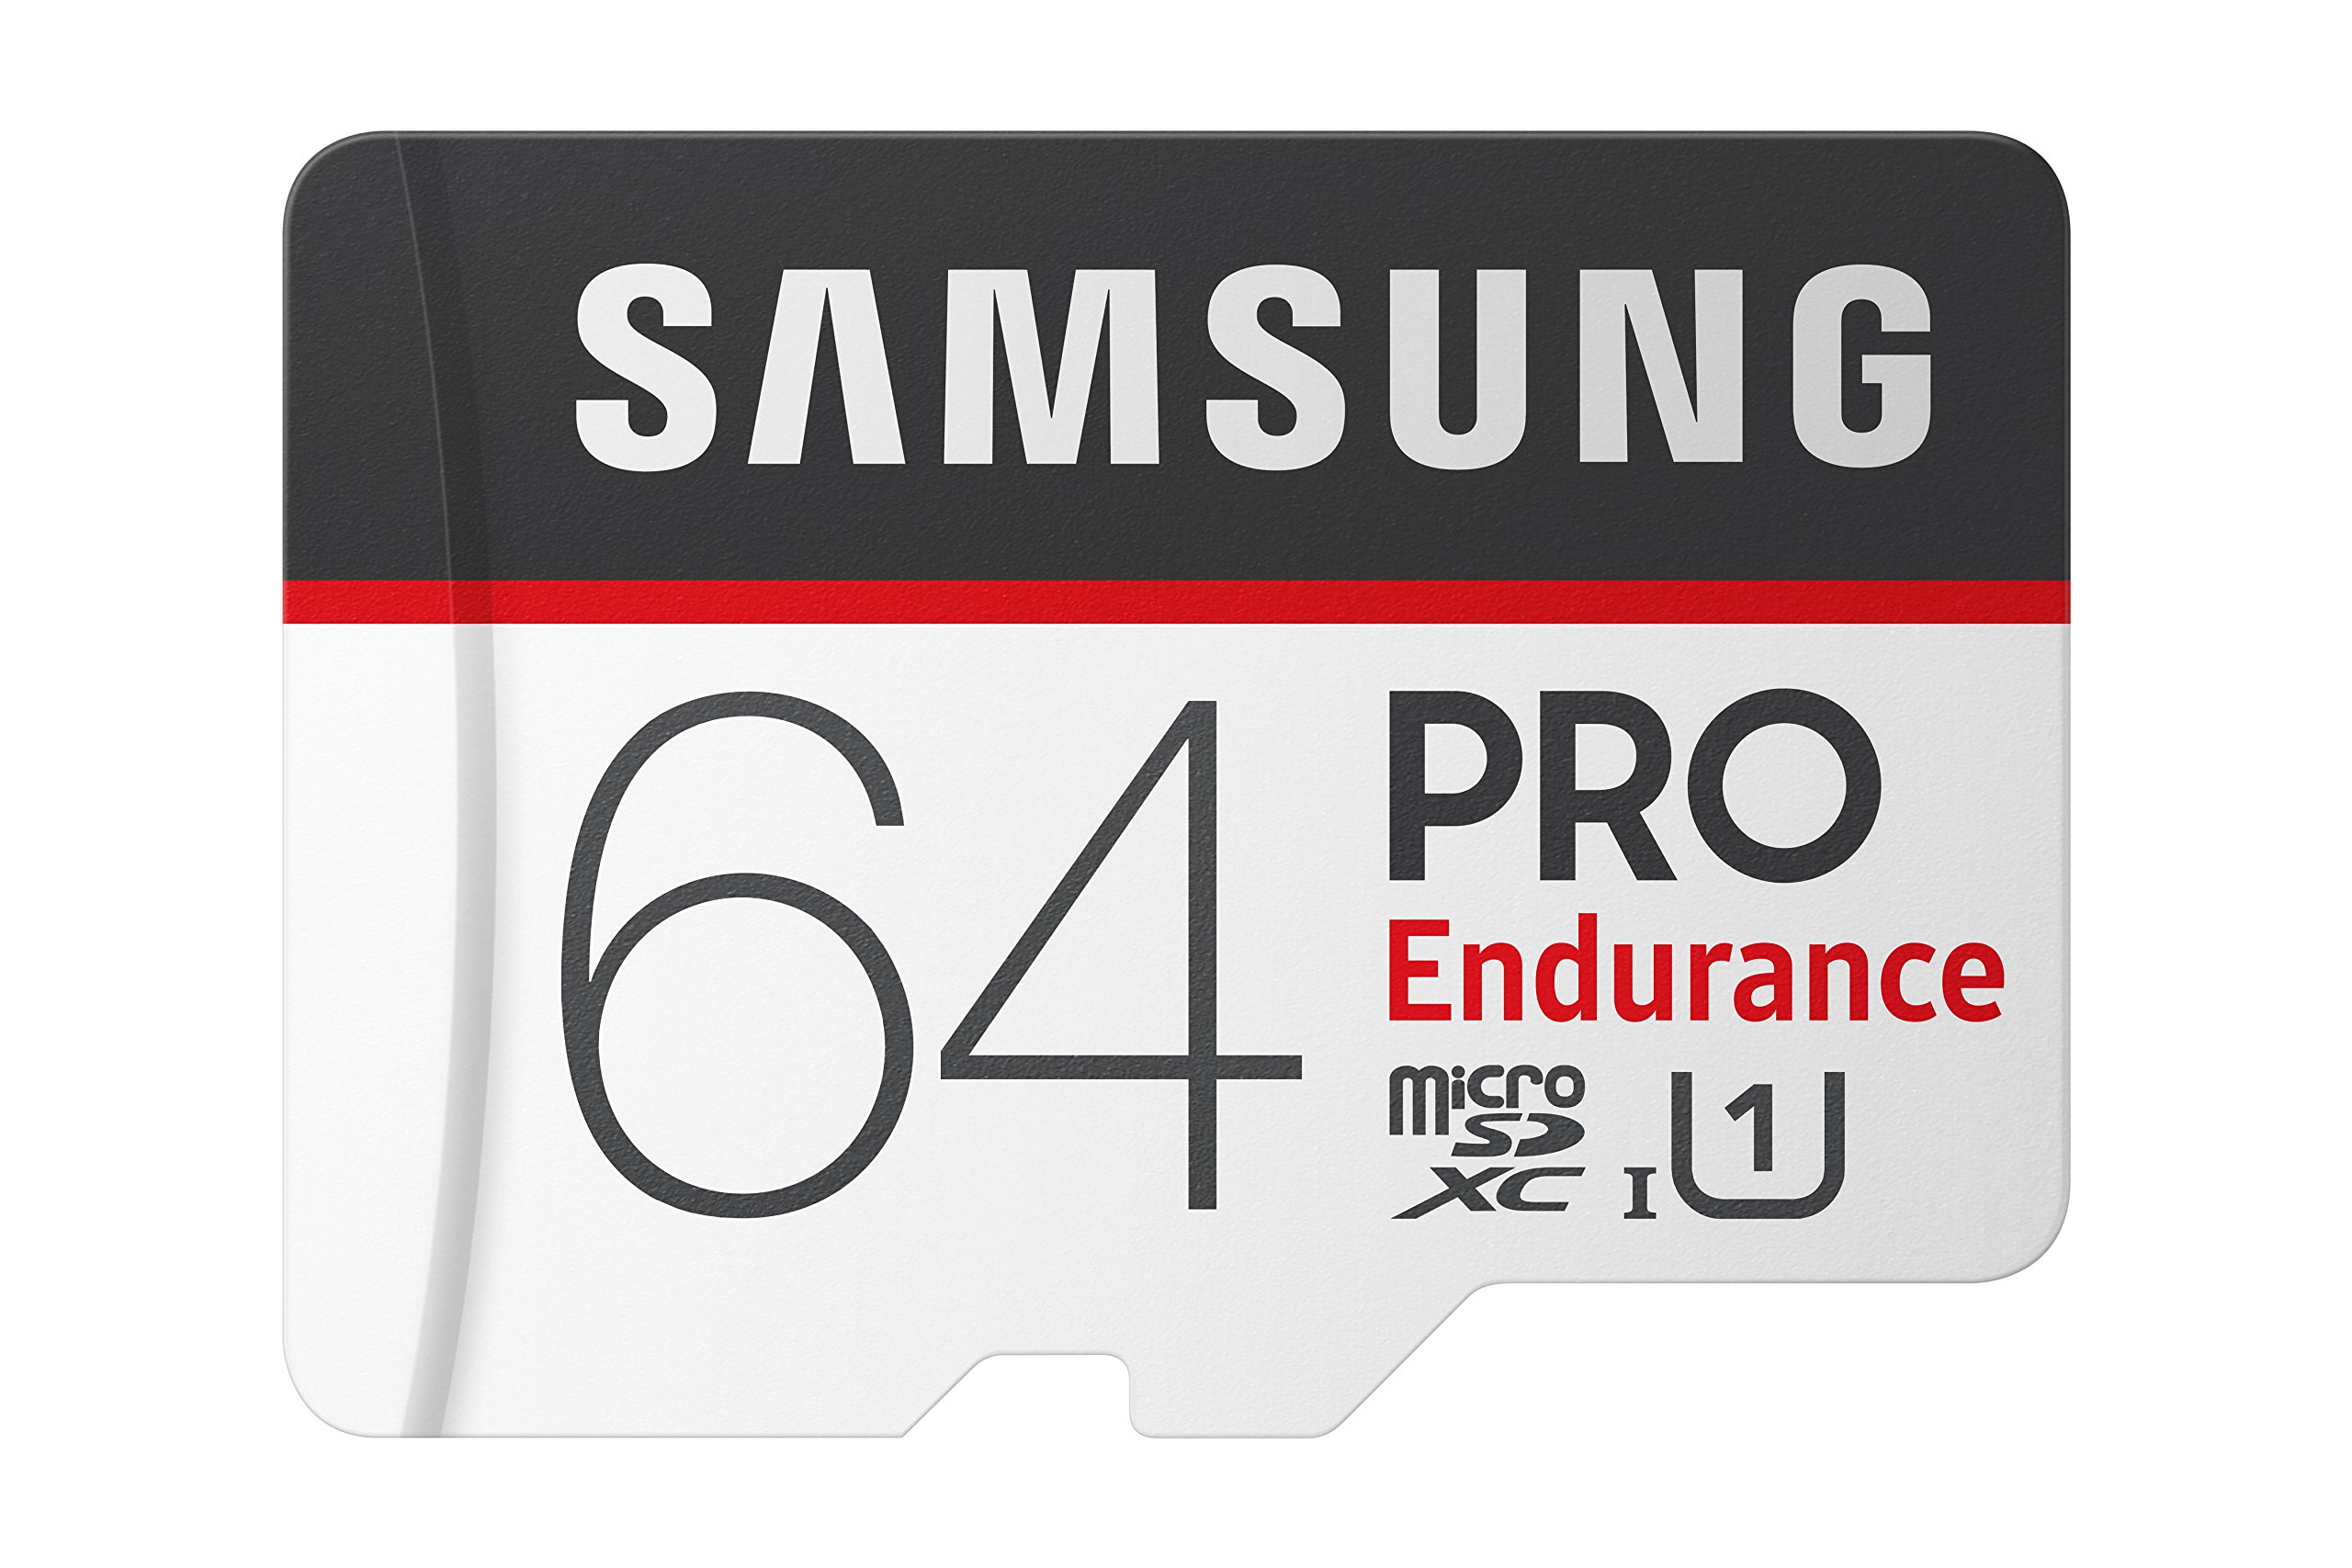 Samsung PRO Endurance 64GB Micro SDXC Card with Adapter - 100MB/s U1 (MB-MJ64GA/AM) by Samsung